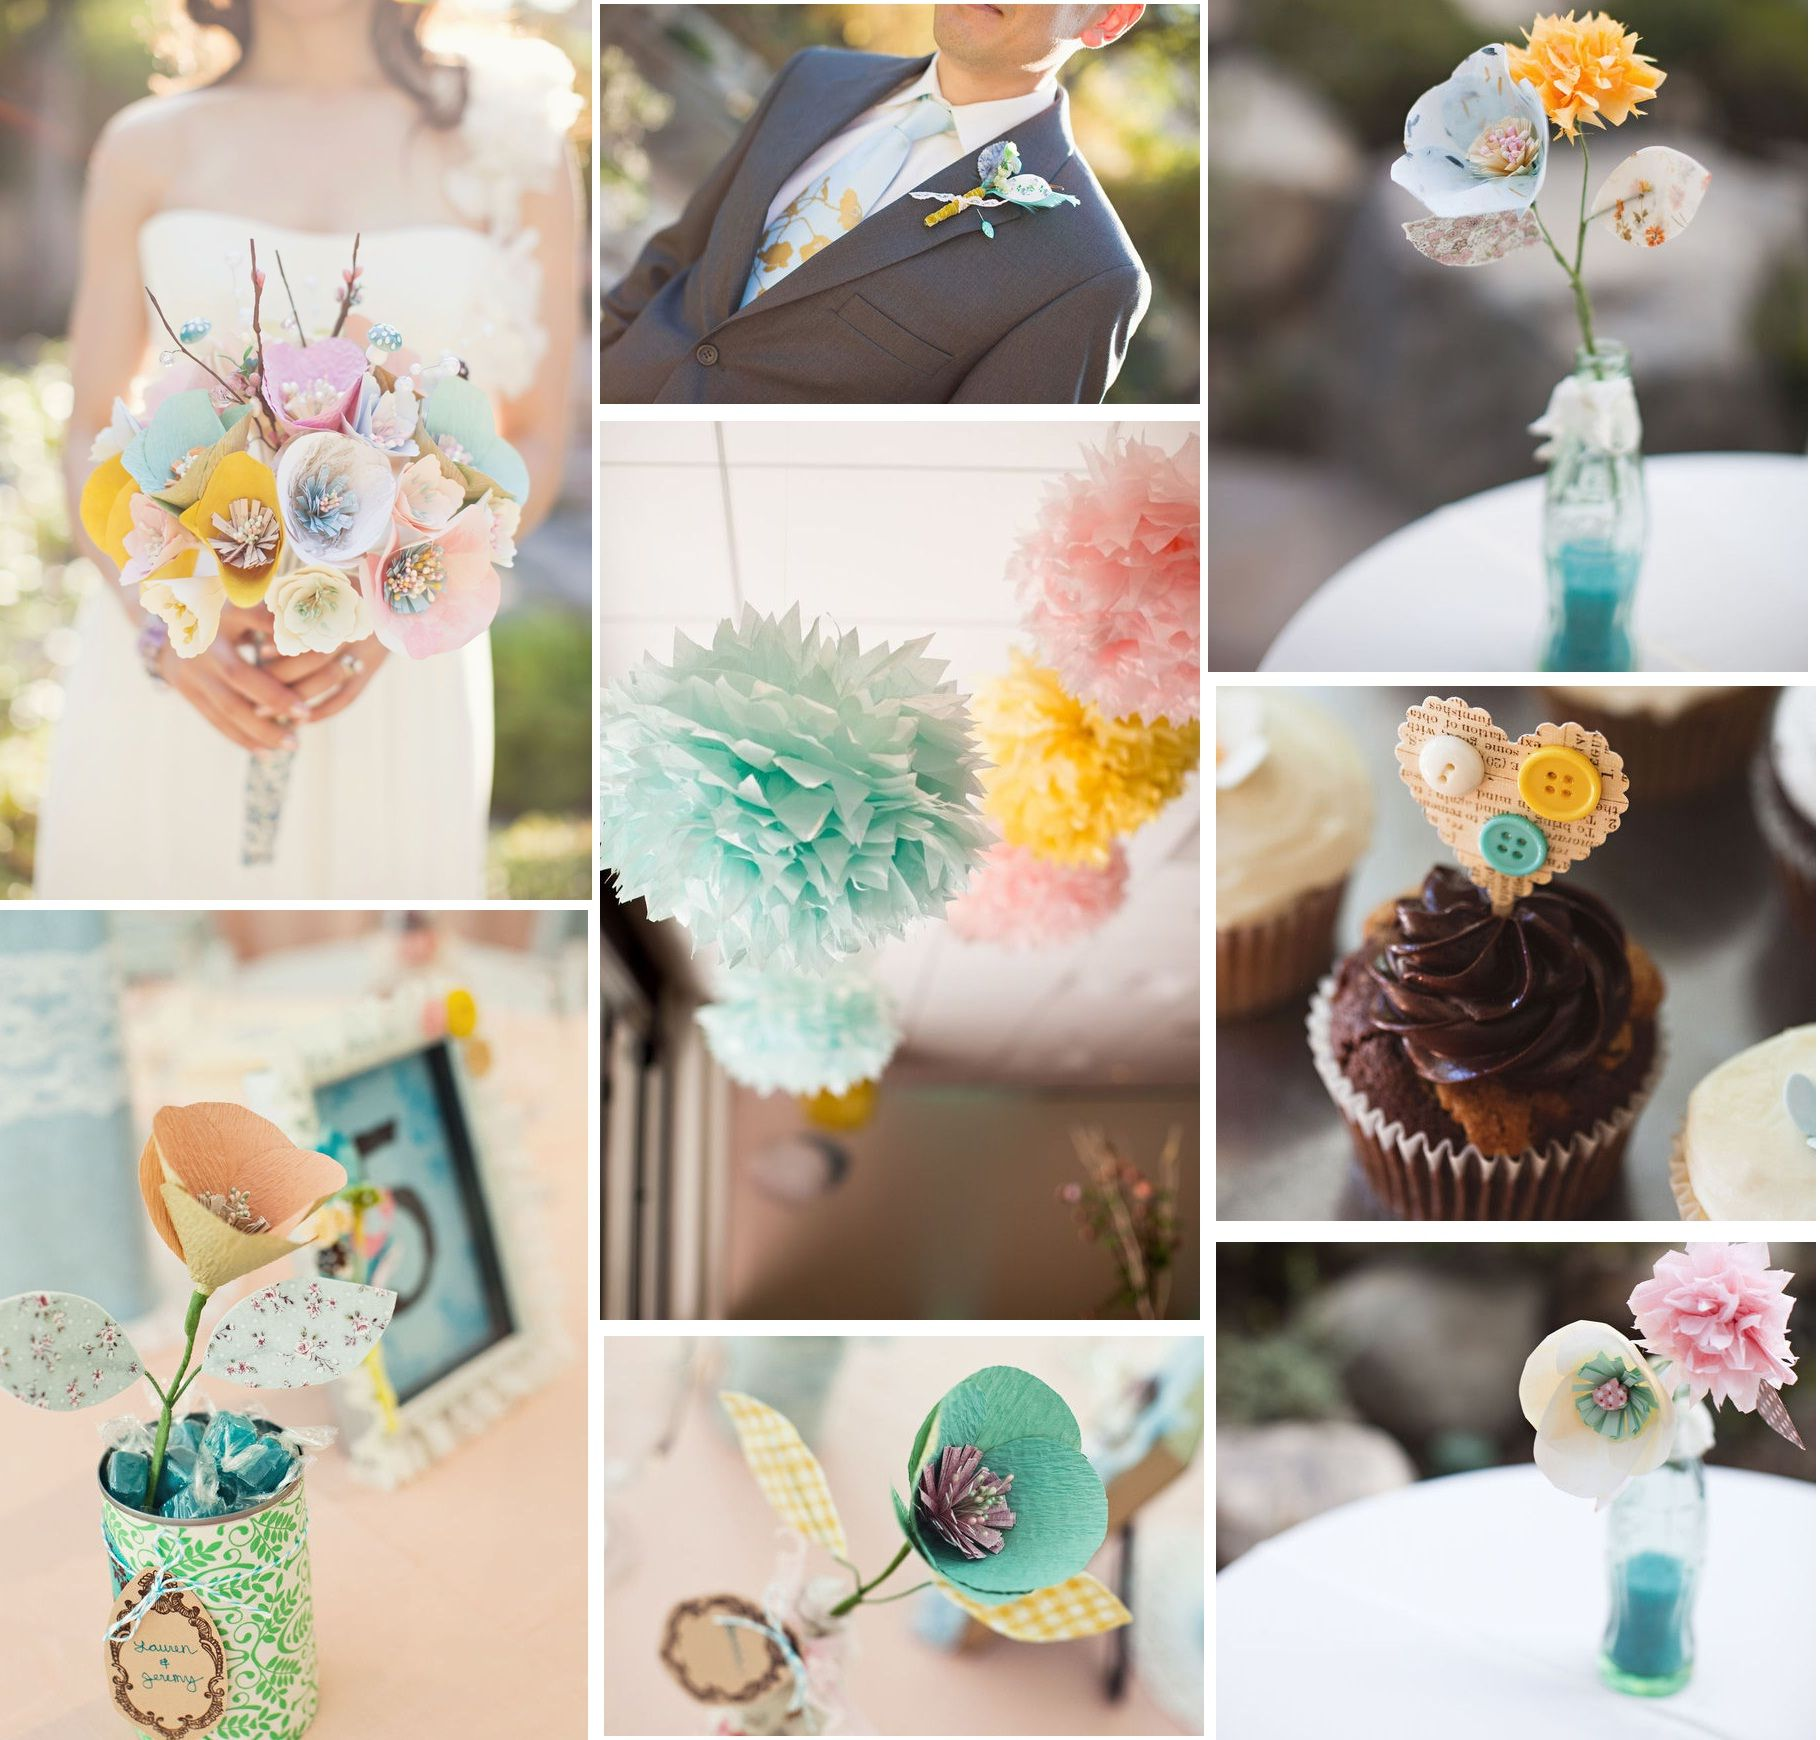 Diy wedding table decorations ideas  For the crafty person  My dream came True   Pinterest  Diy